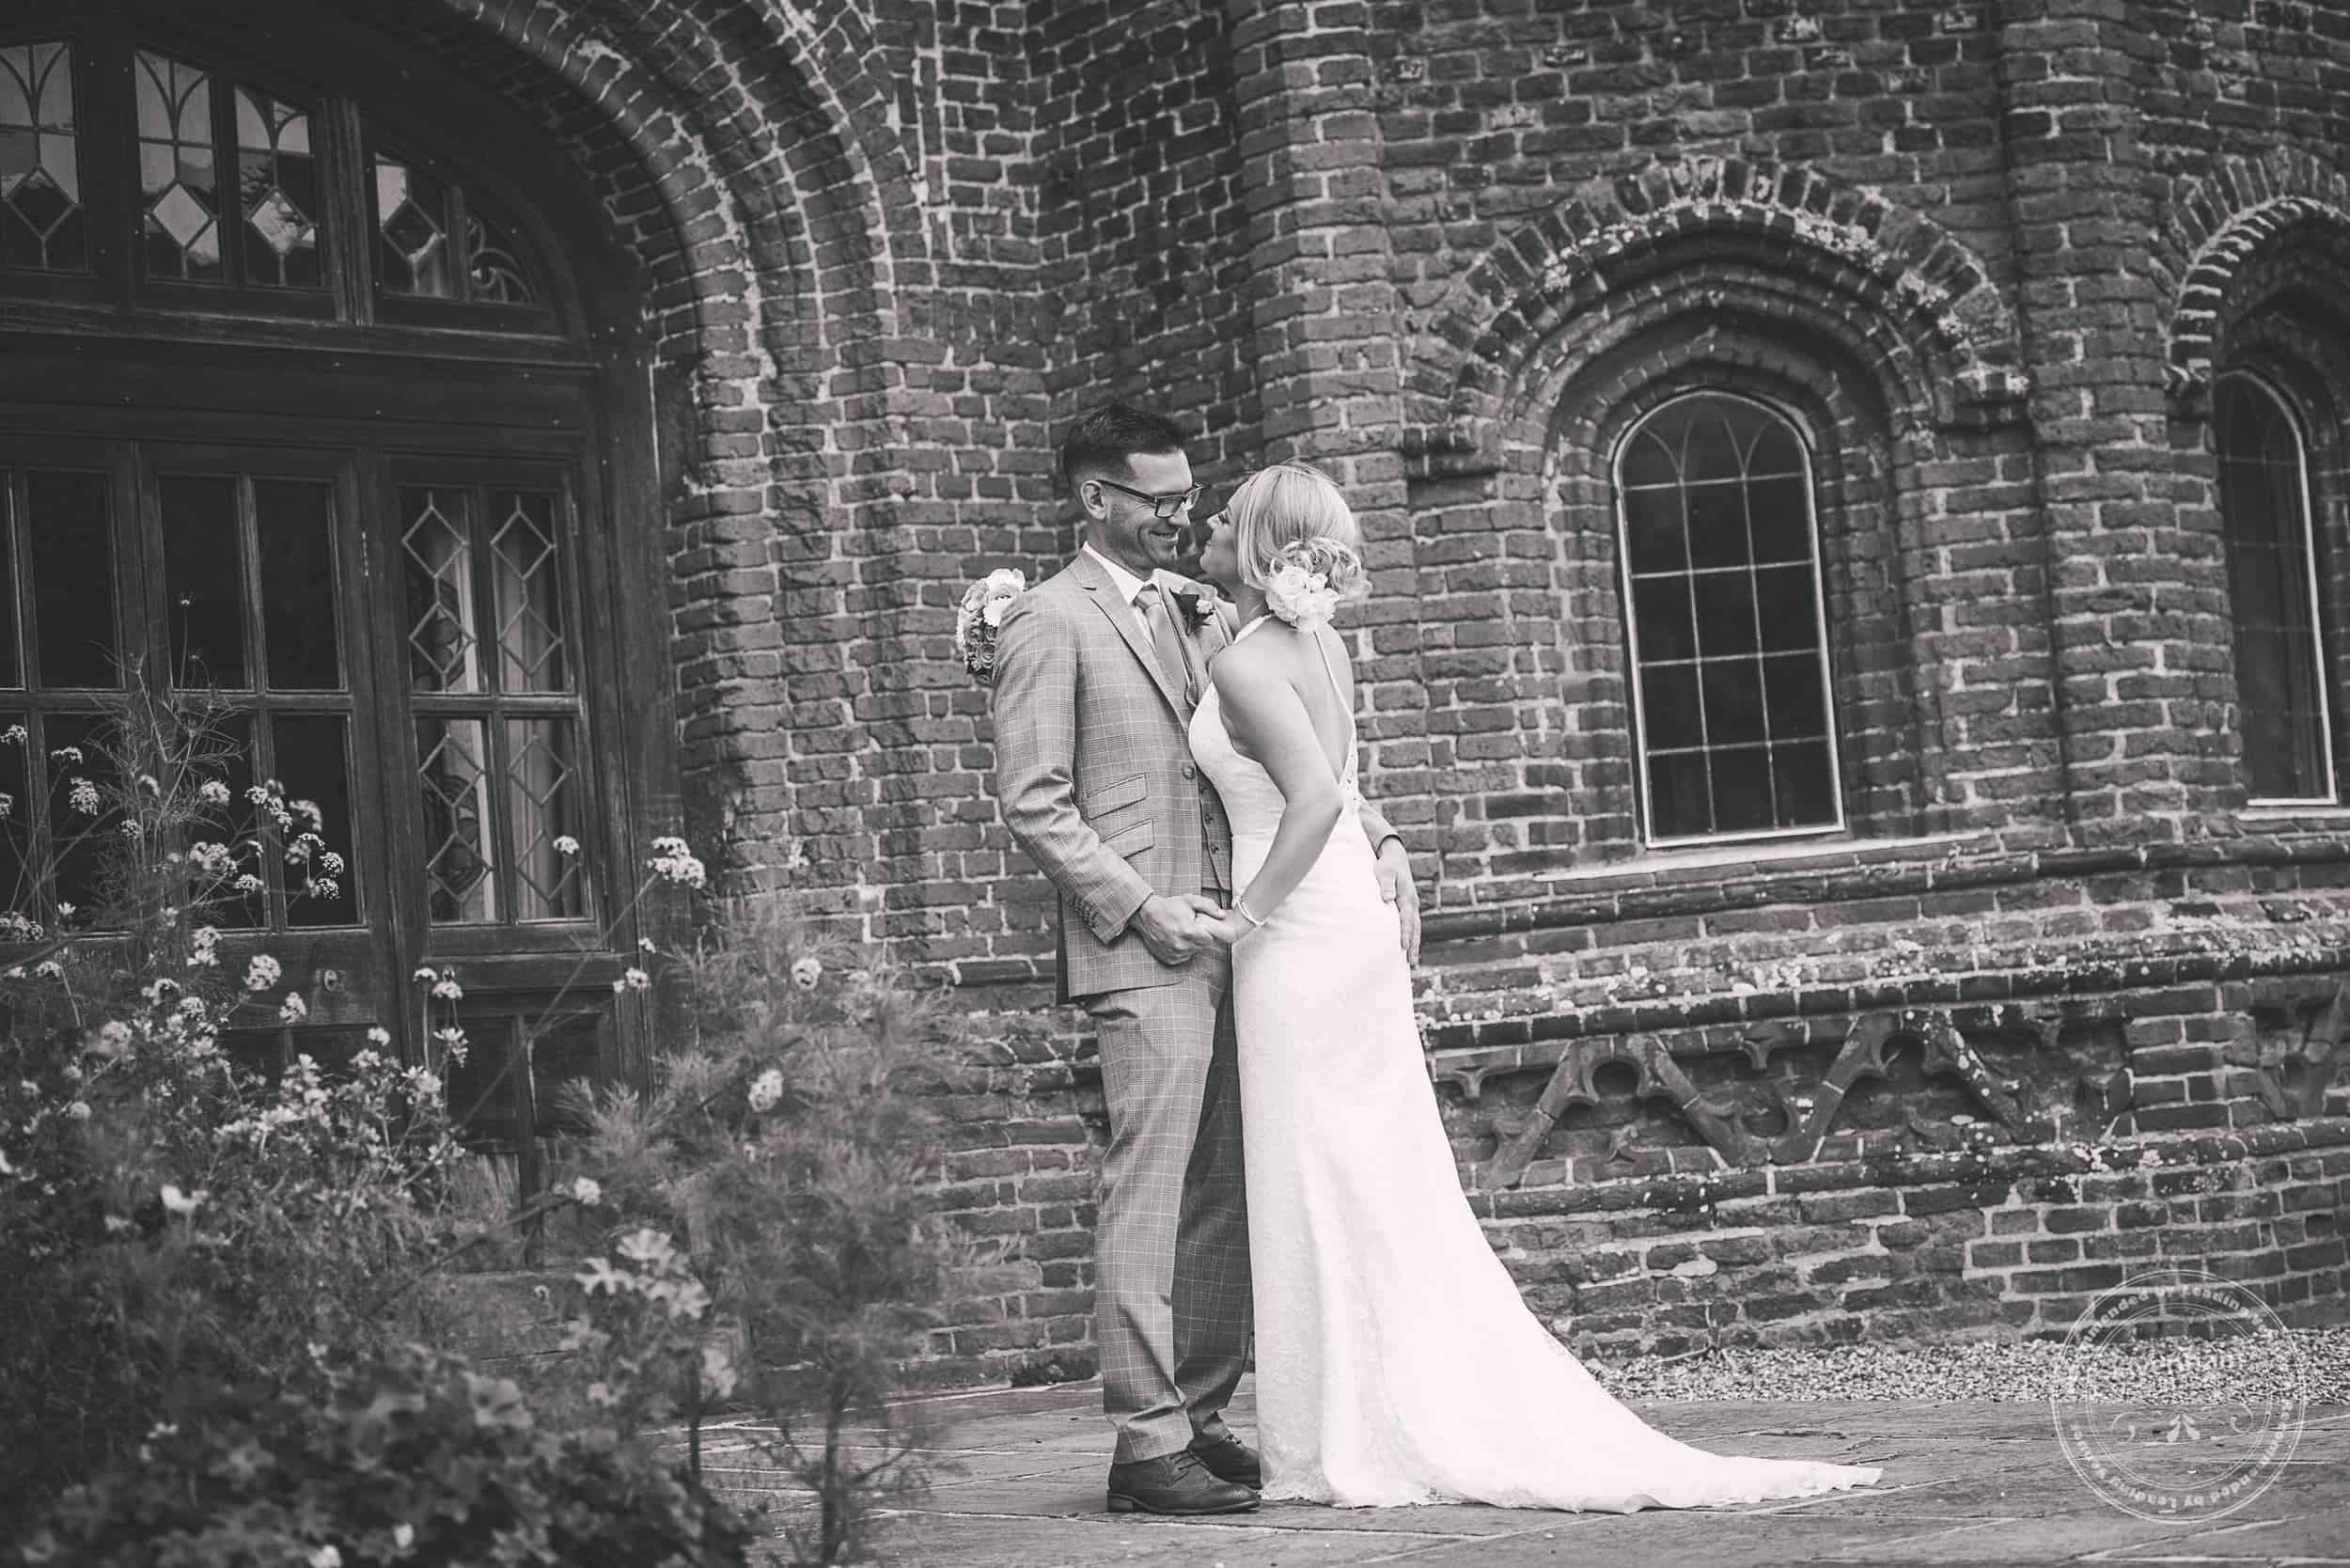 140717 Layer Marney Wedding Photography by Lavenham Photographic 094